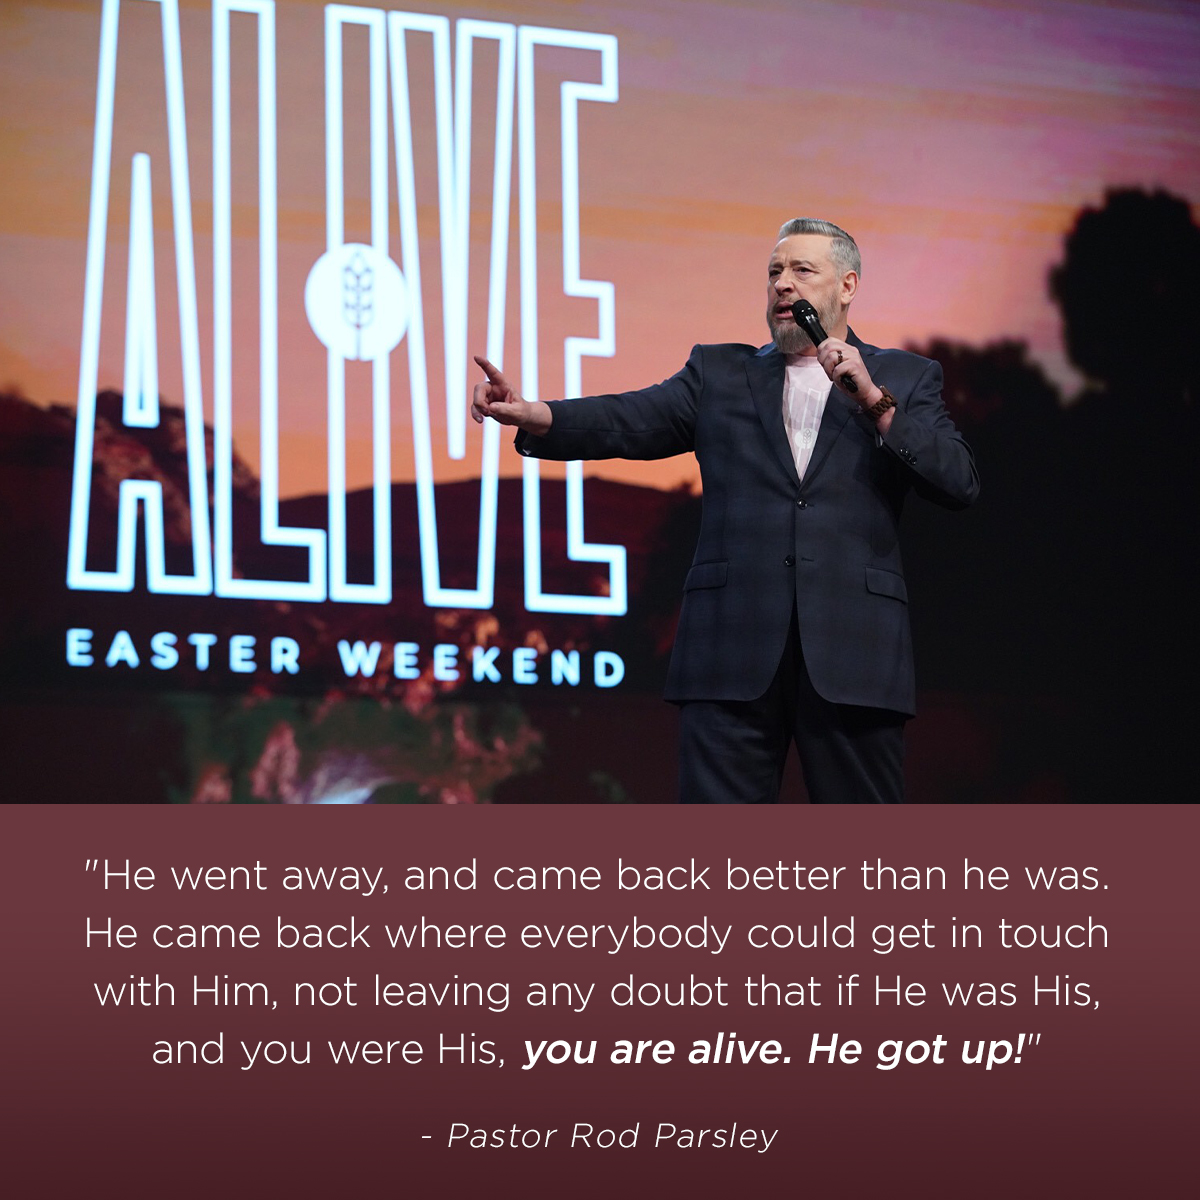 """He went away, and came back better than he was. He came back where everybody could get in touch with Him, not leaving any doubt that if He was His, and you were His, you are alive. He got up!"" – Pastor Rod Parsley"